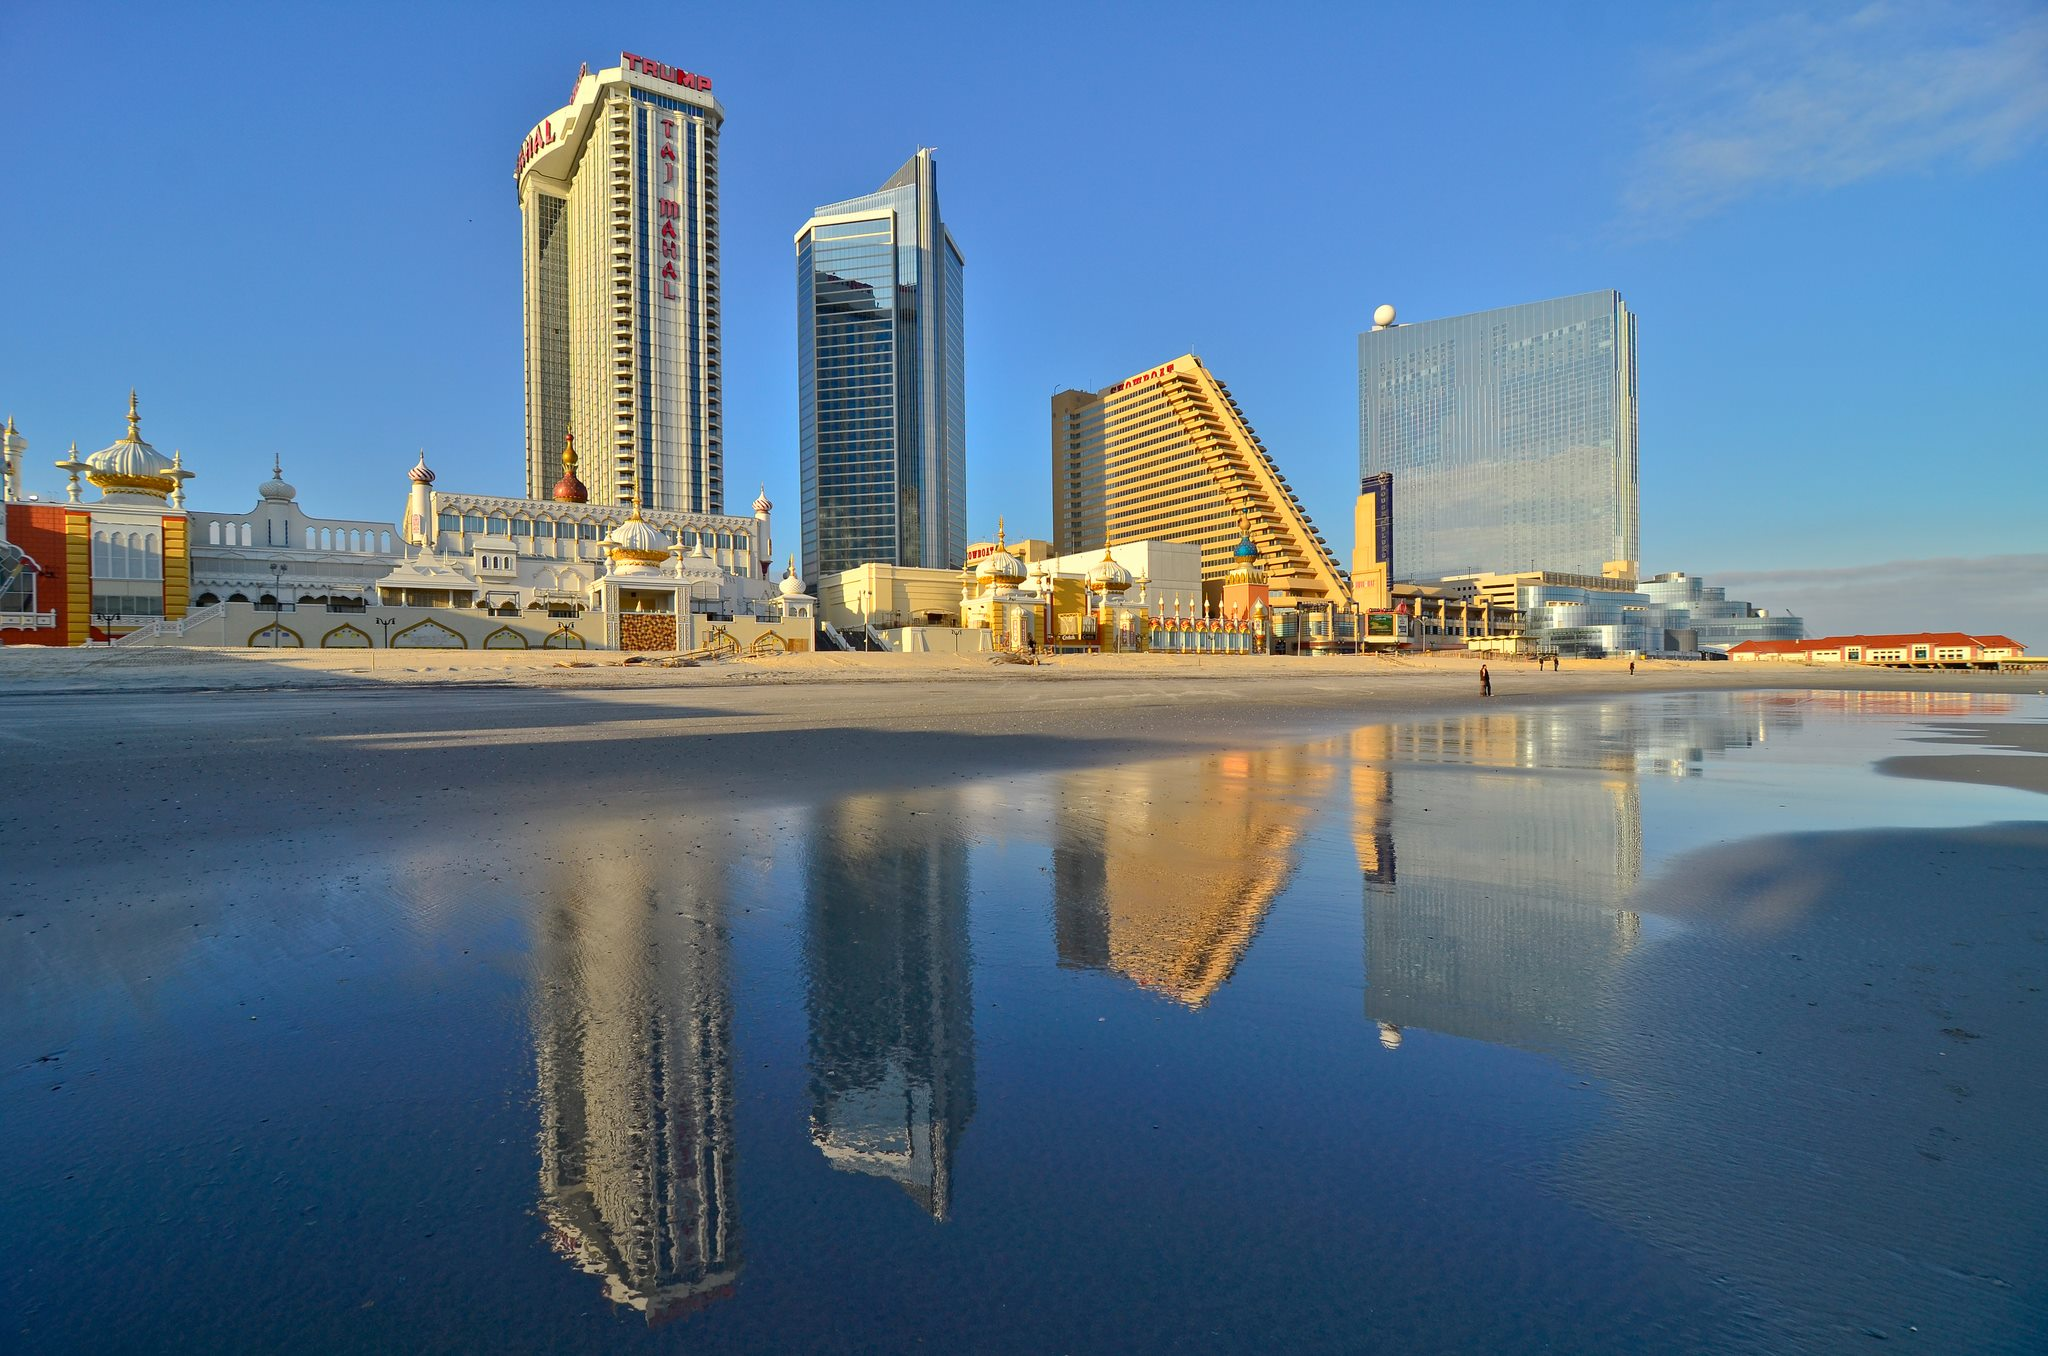 Atlantic City Widescreen for desktop